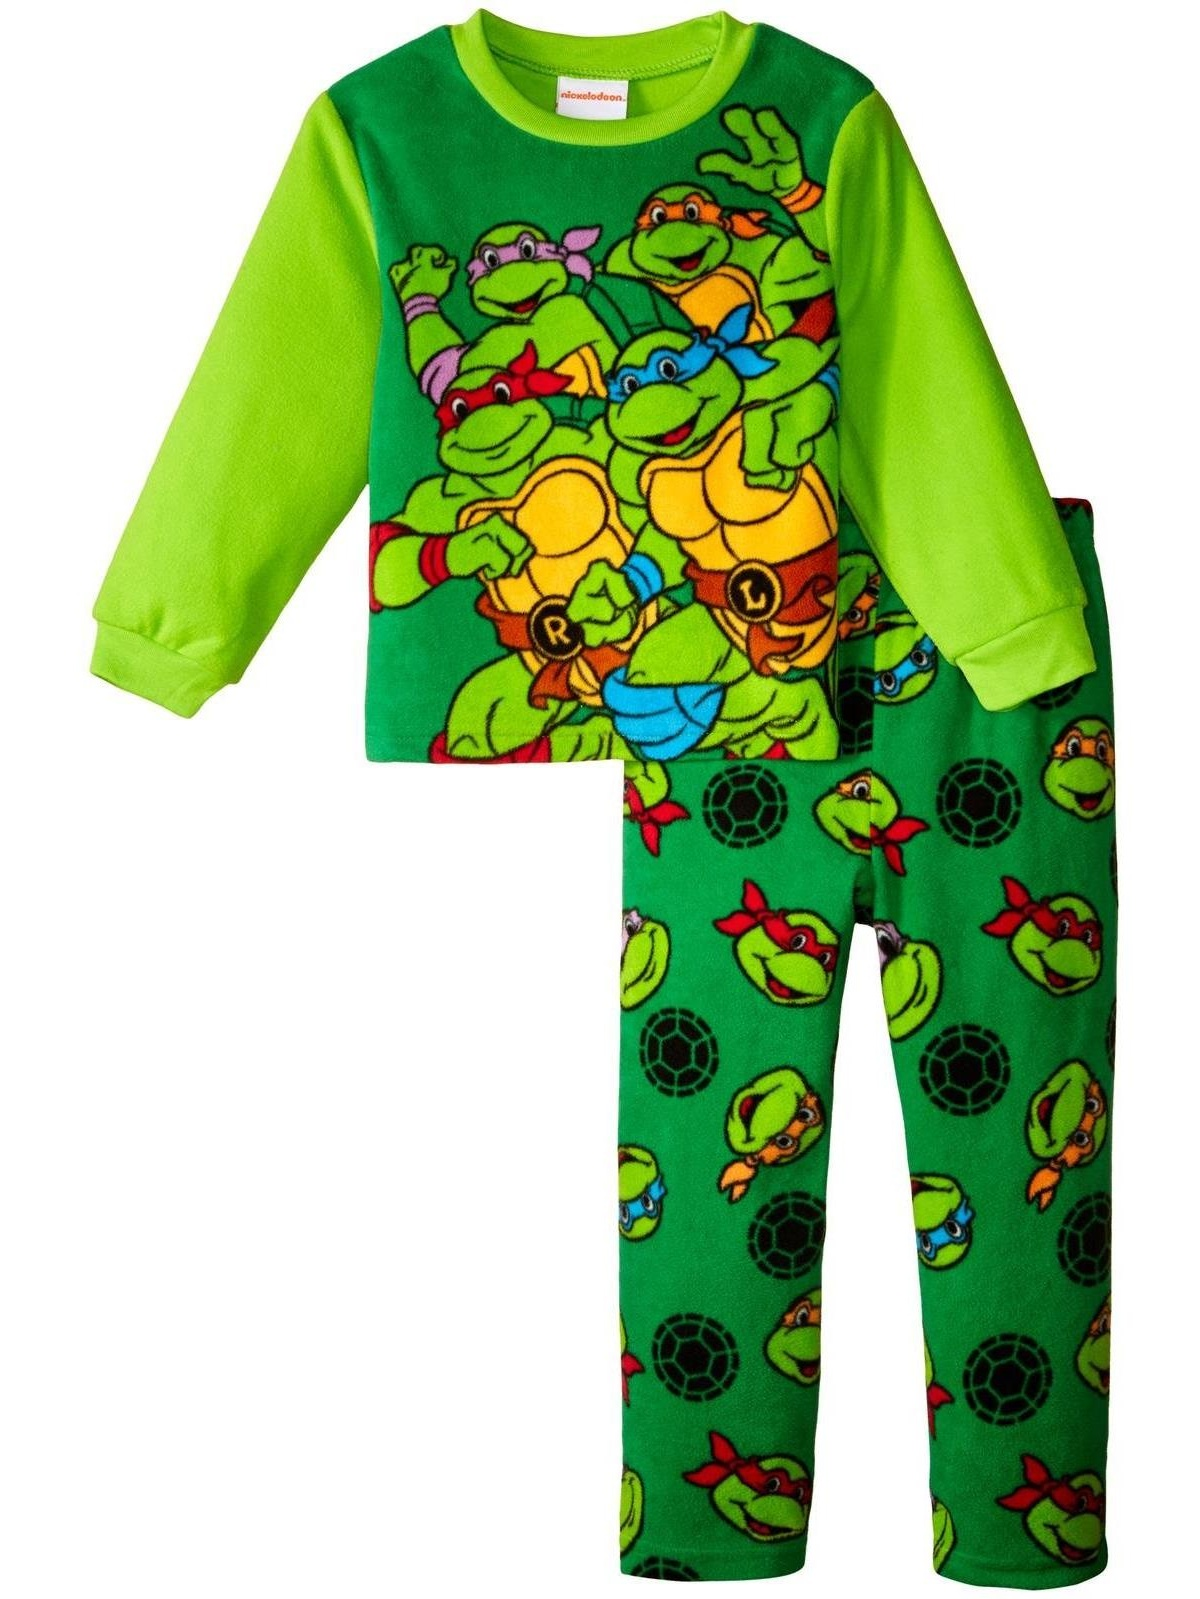 Nickelodeon Tmnt 2 Piece Fleece Set (Toddler), Multicolor, Size: 4T Toddler